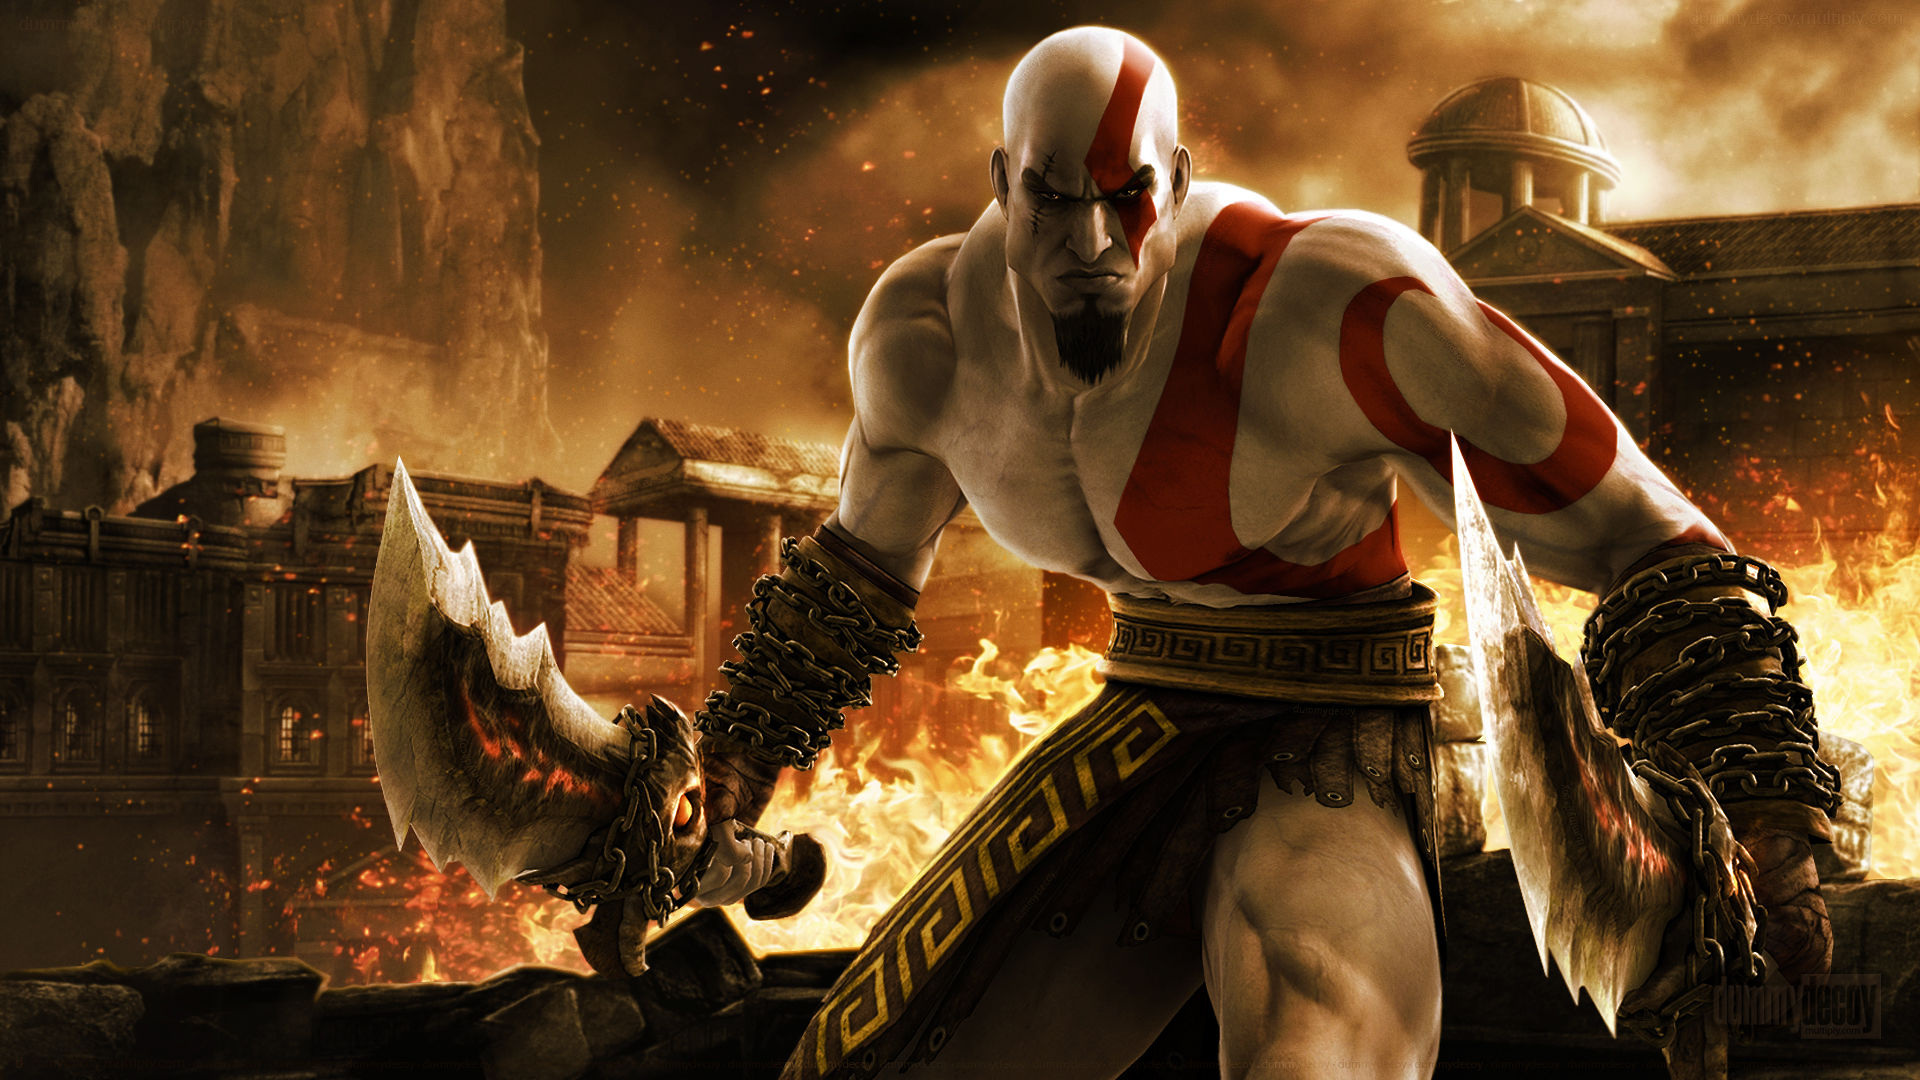 God of war ascension ps4 download story system requirements god of war ascension story voltagebd Image collections